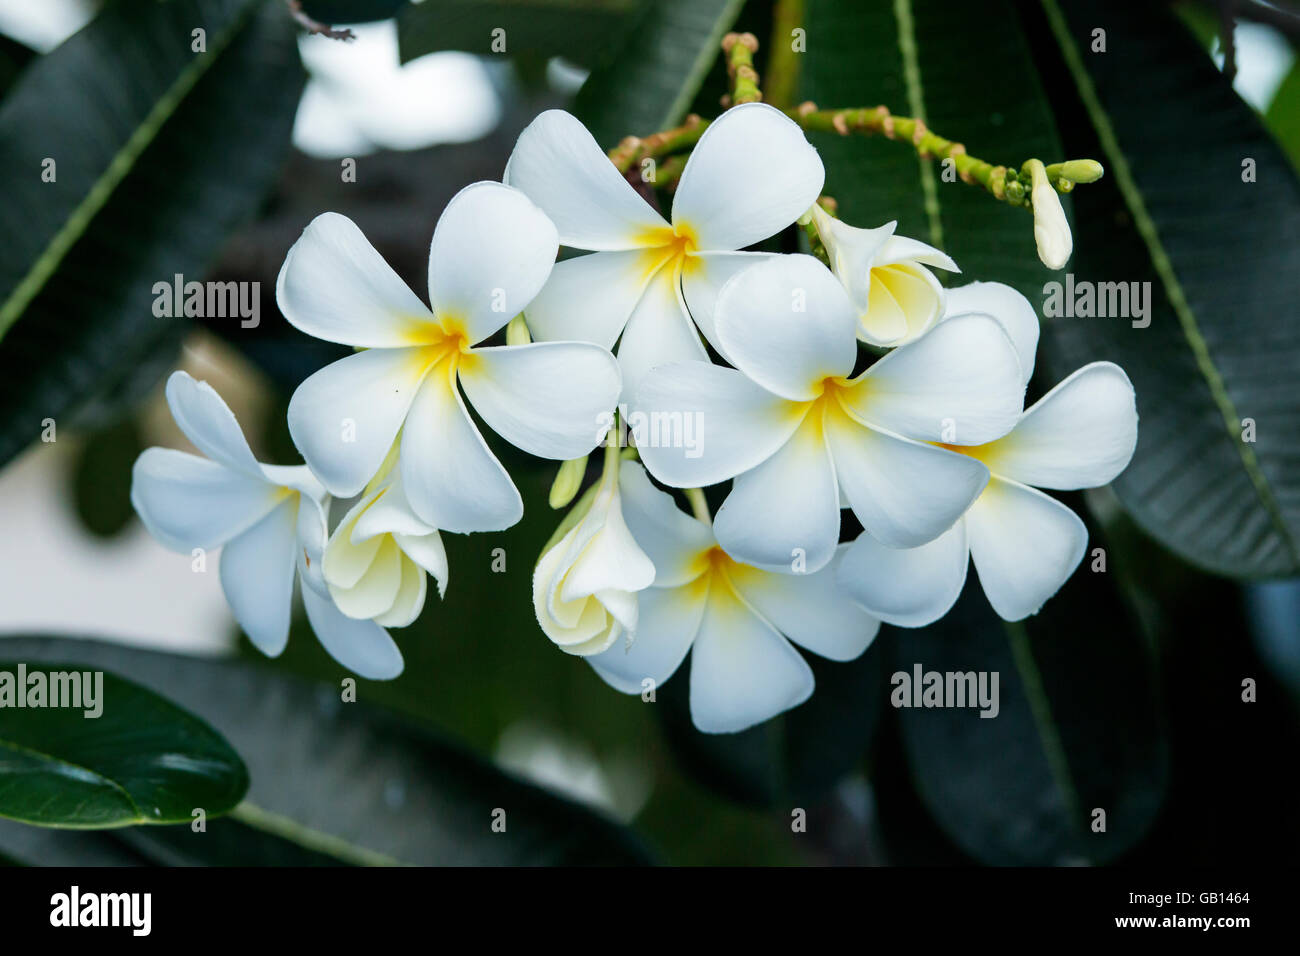 group of yellow white flowers (Frangipani, Plumeria) on tree